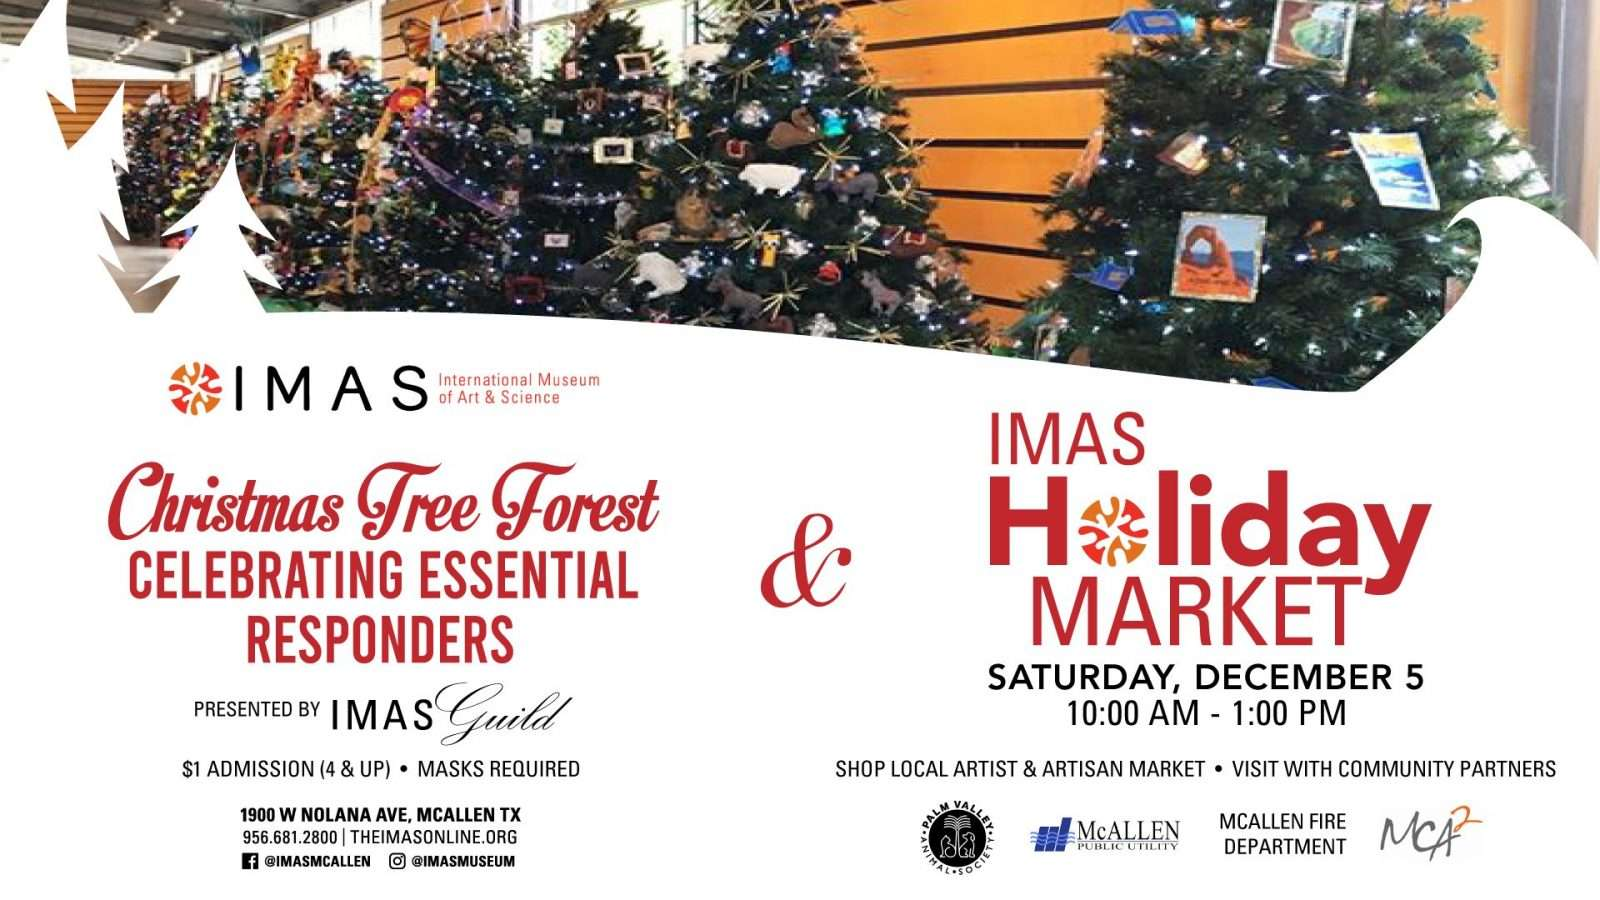 IMAS Holiday Market and Christmas Tree Forest